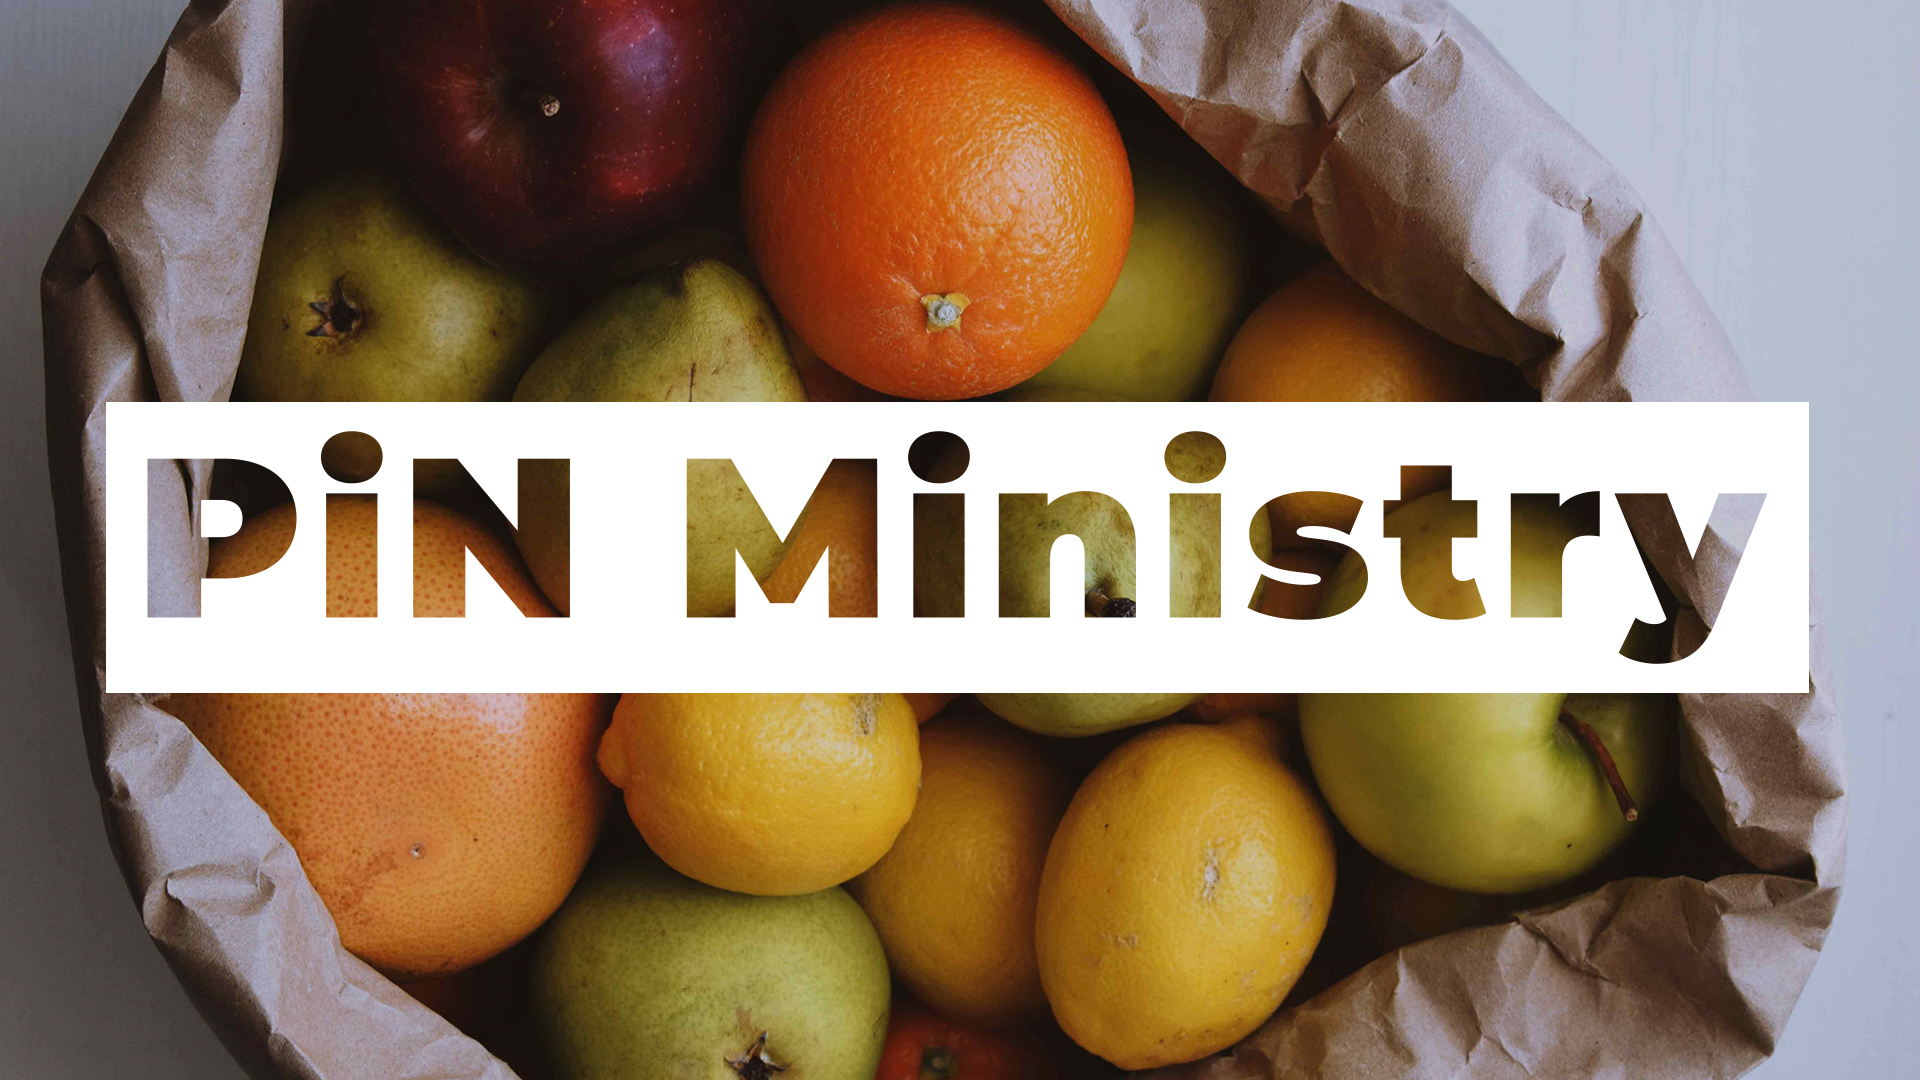 PiN Ministry | Packing Lunches